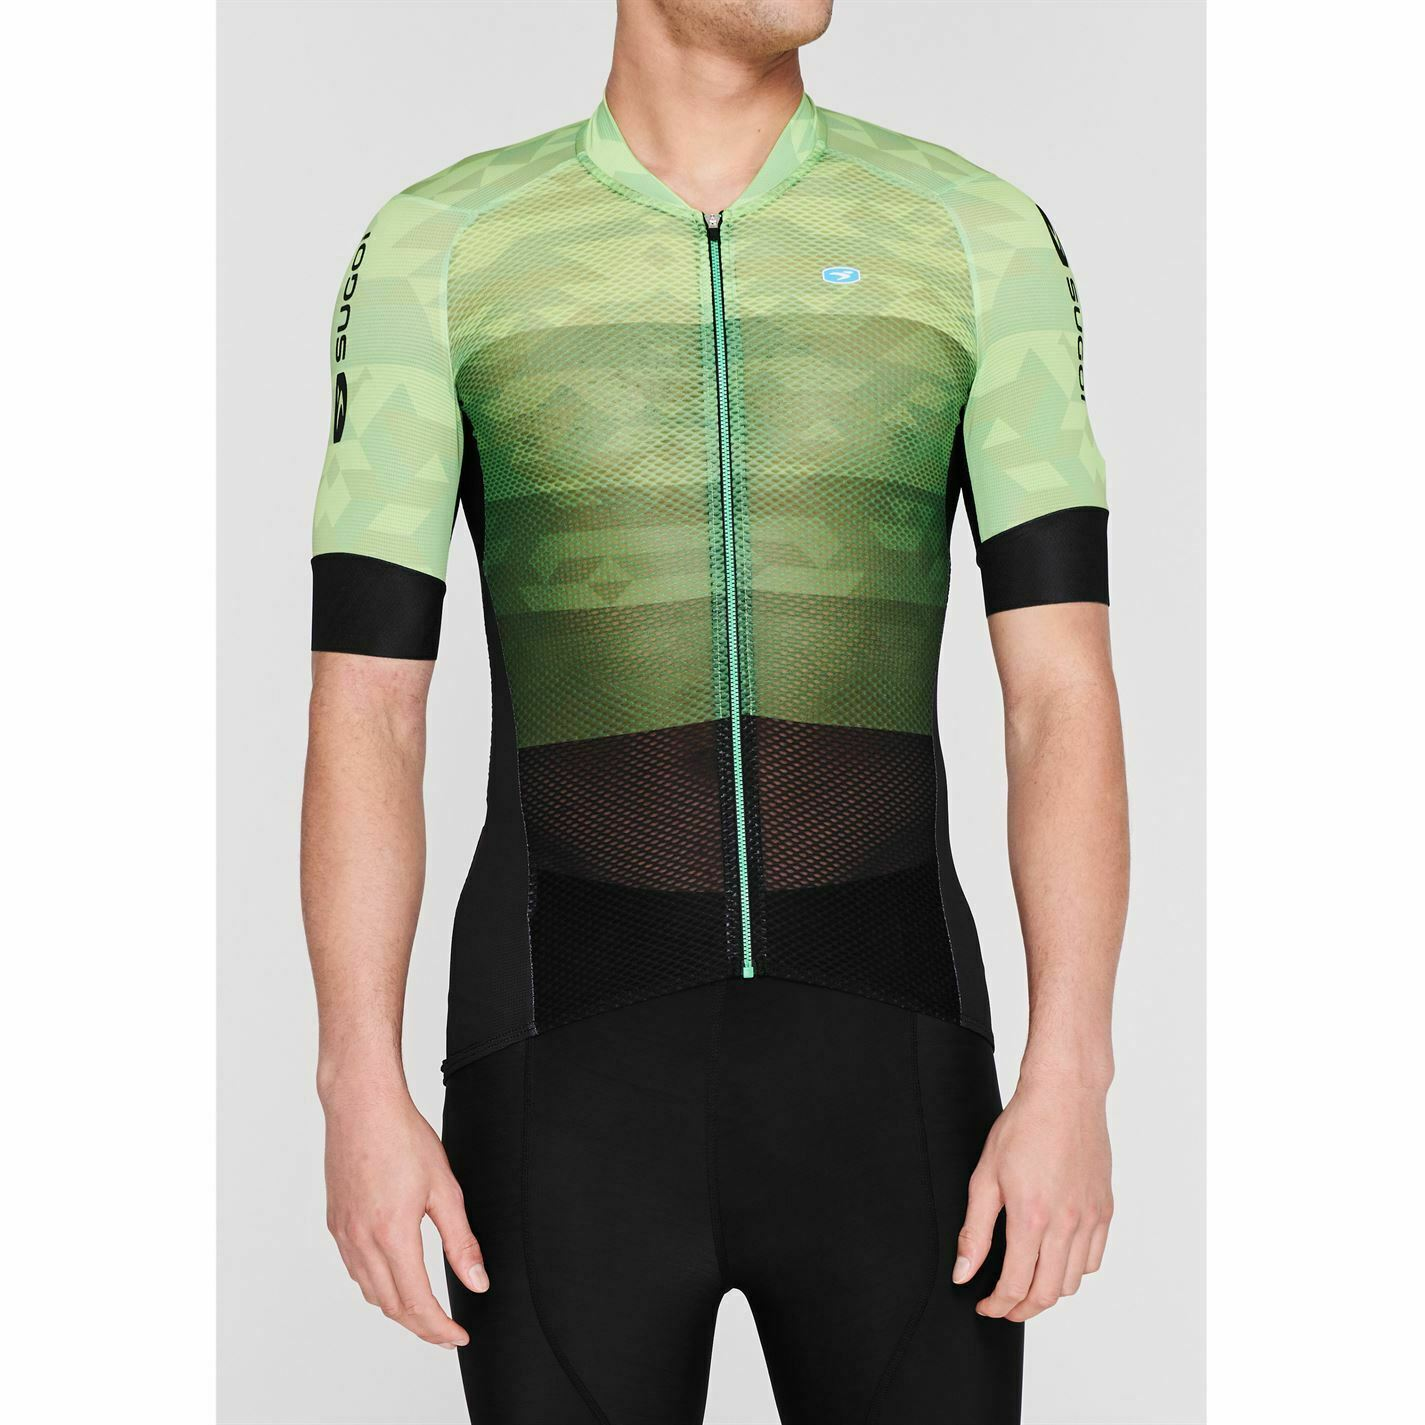 Sugoi Climbers Jersey  Mens Gents Cycle - Short Sleeve Cycling Top  choose your favorite